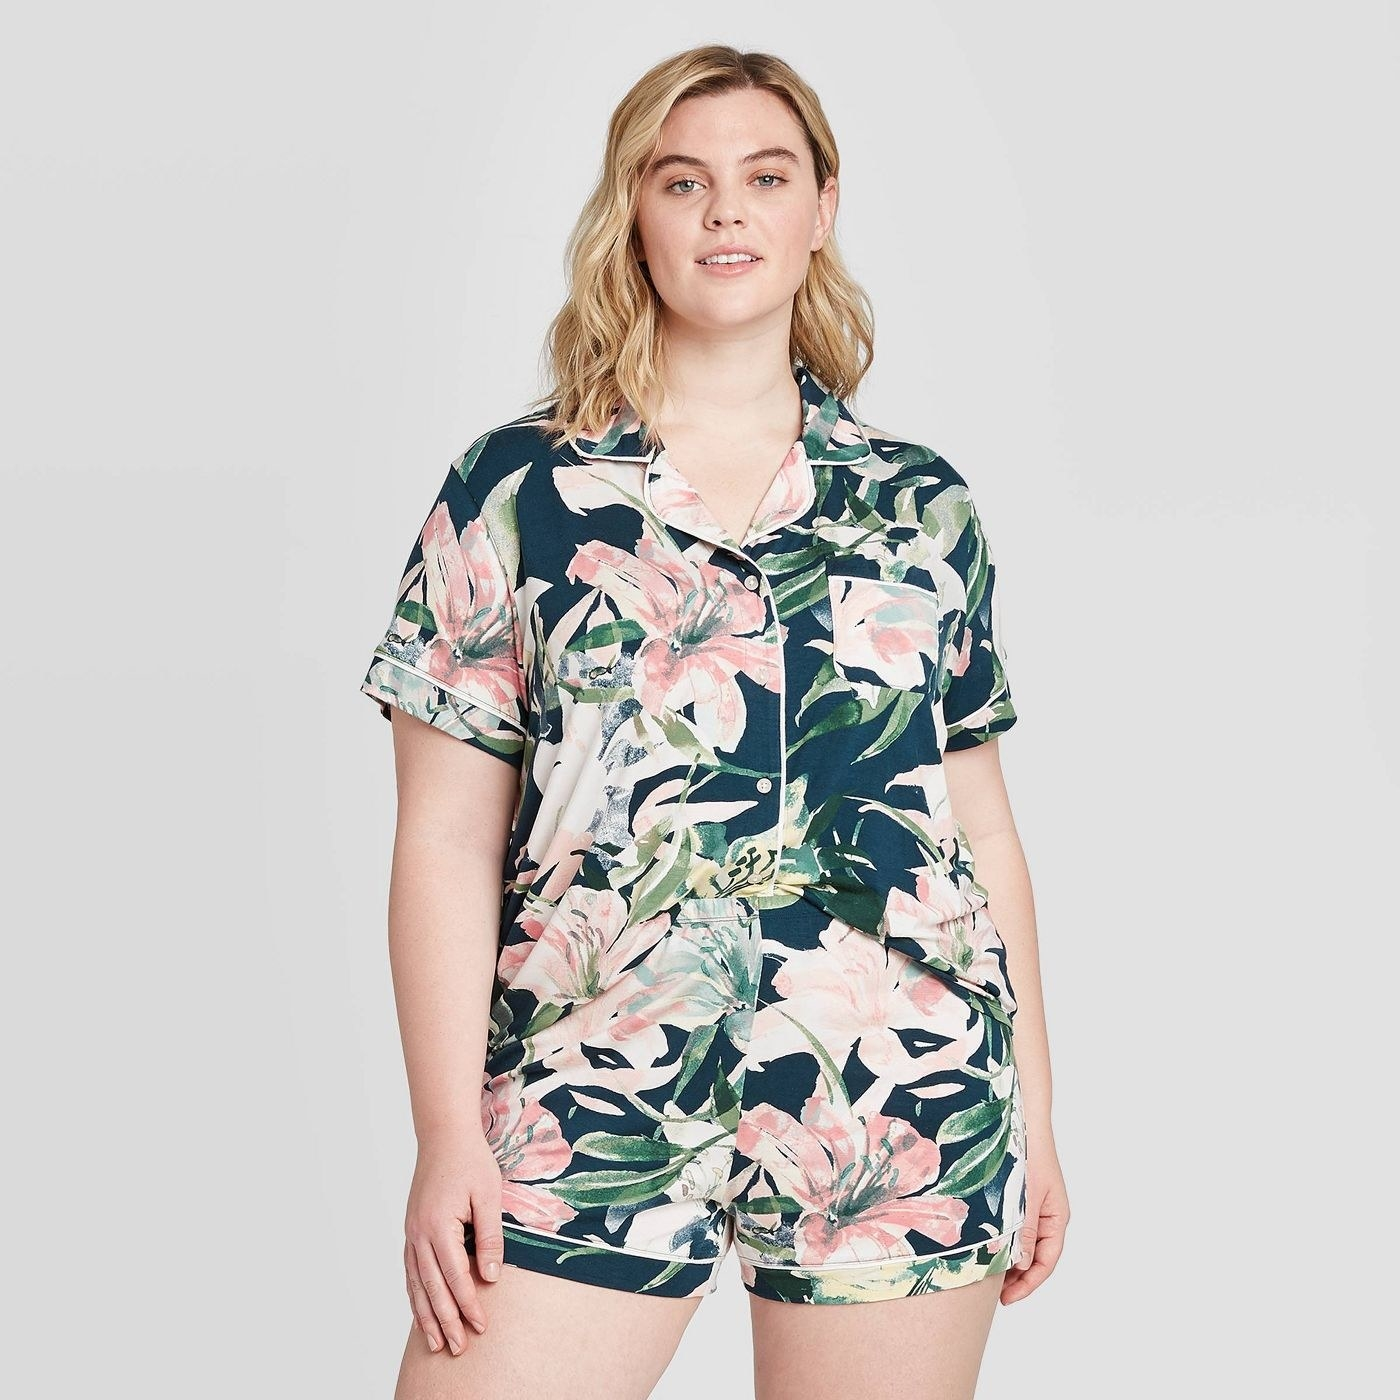 A model in a short sleeve tee and matching pajama short in dark green with pink floral watercolor patterns